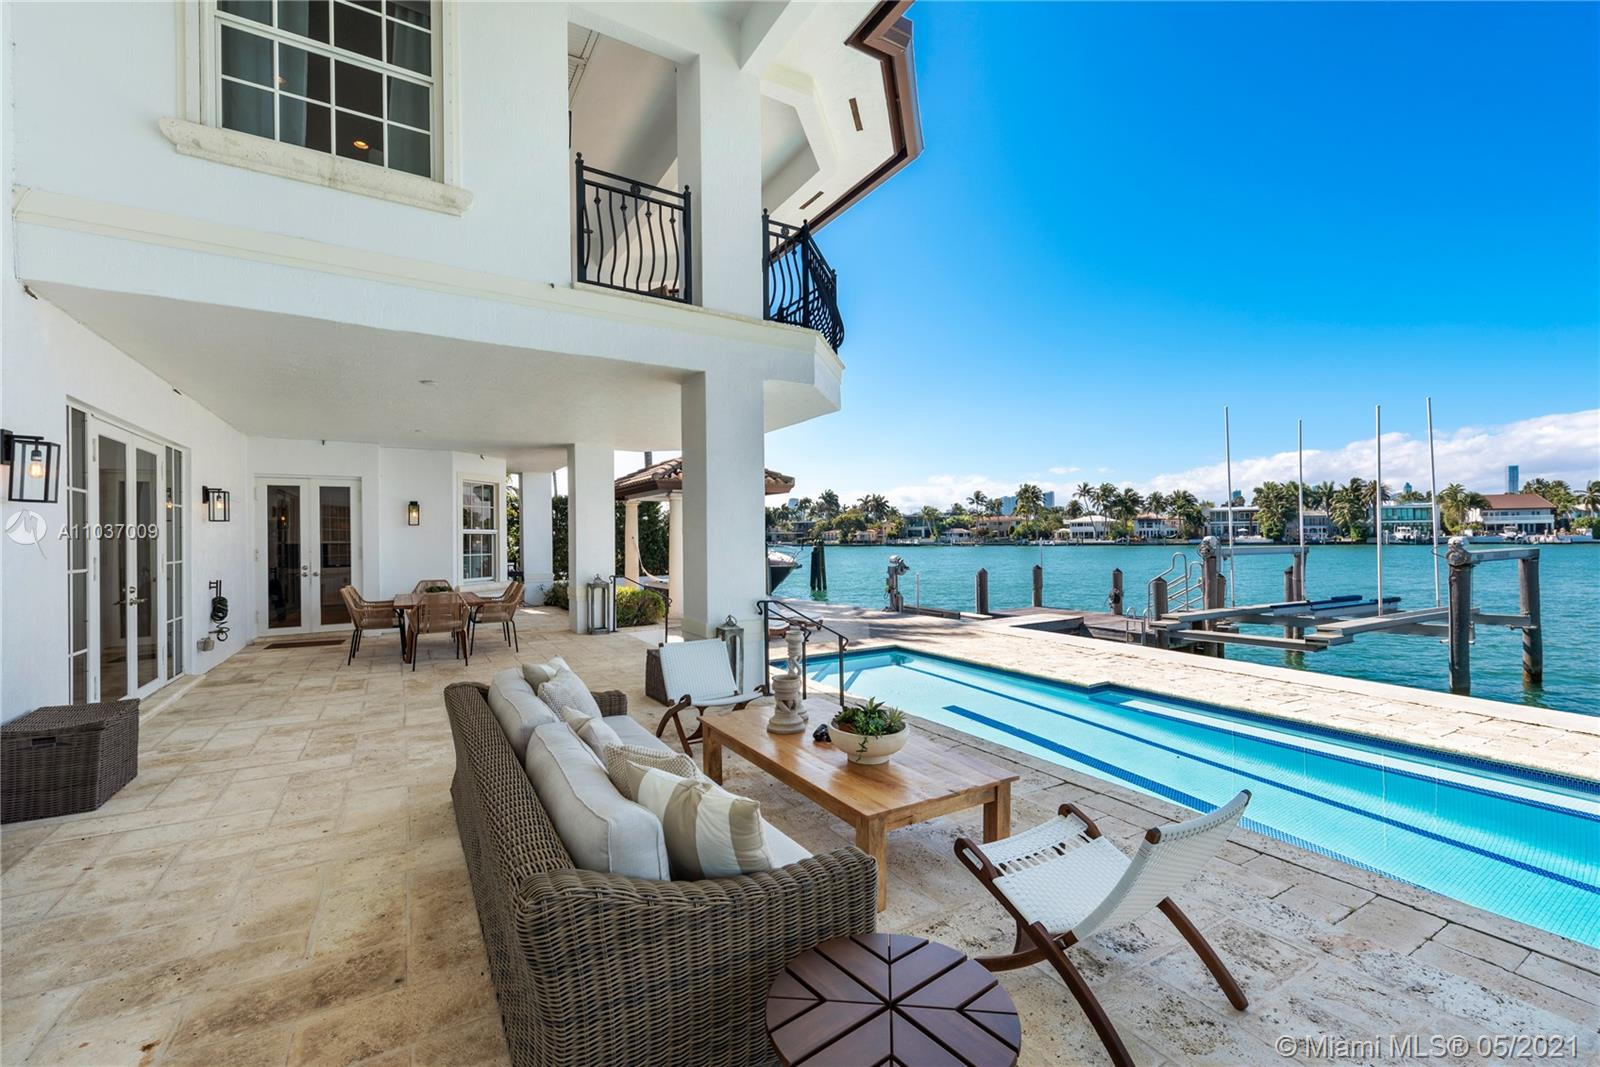 Venetian Islands - 424 W Rivo Alto Dr, Miami Beach, FL 33139